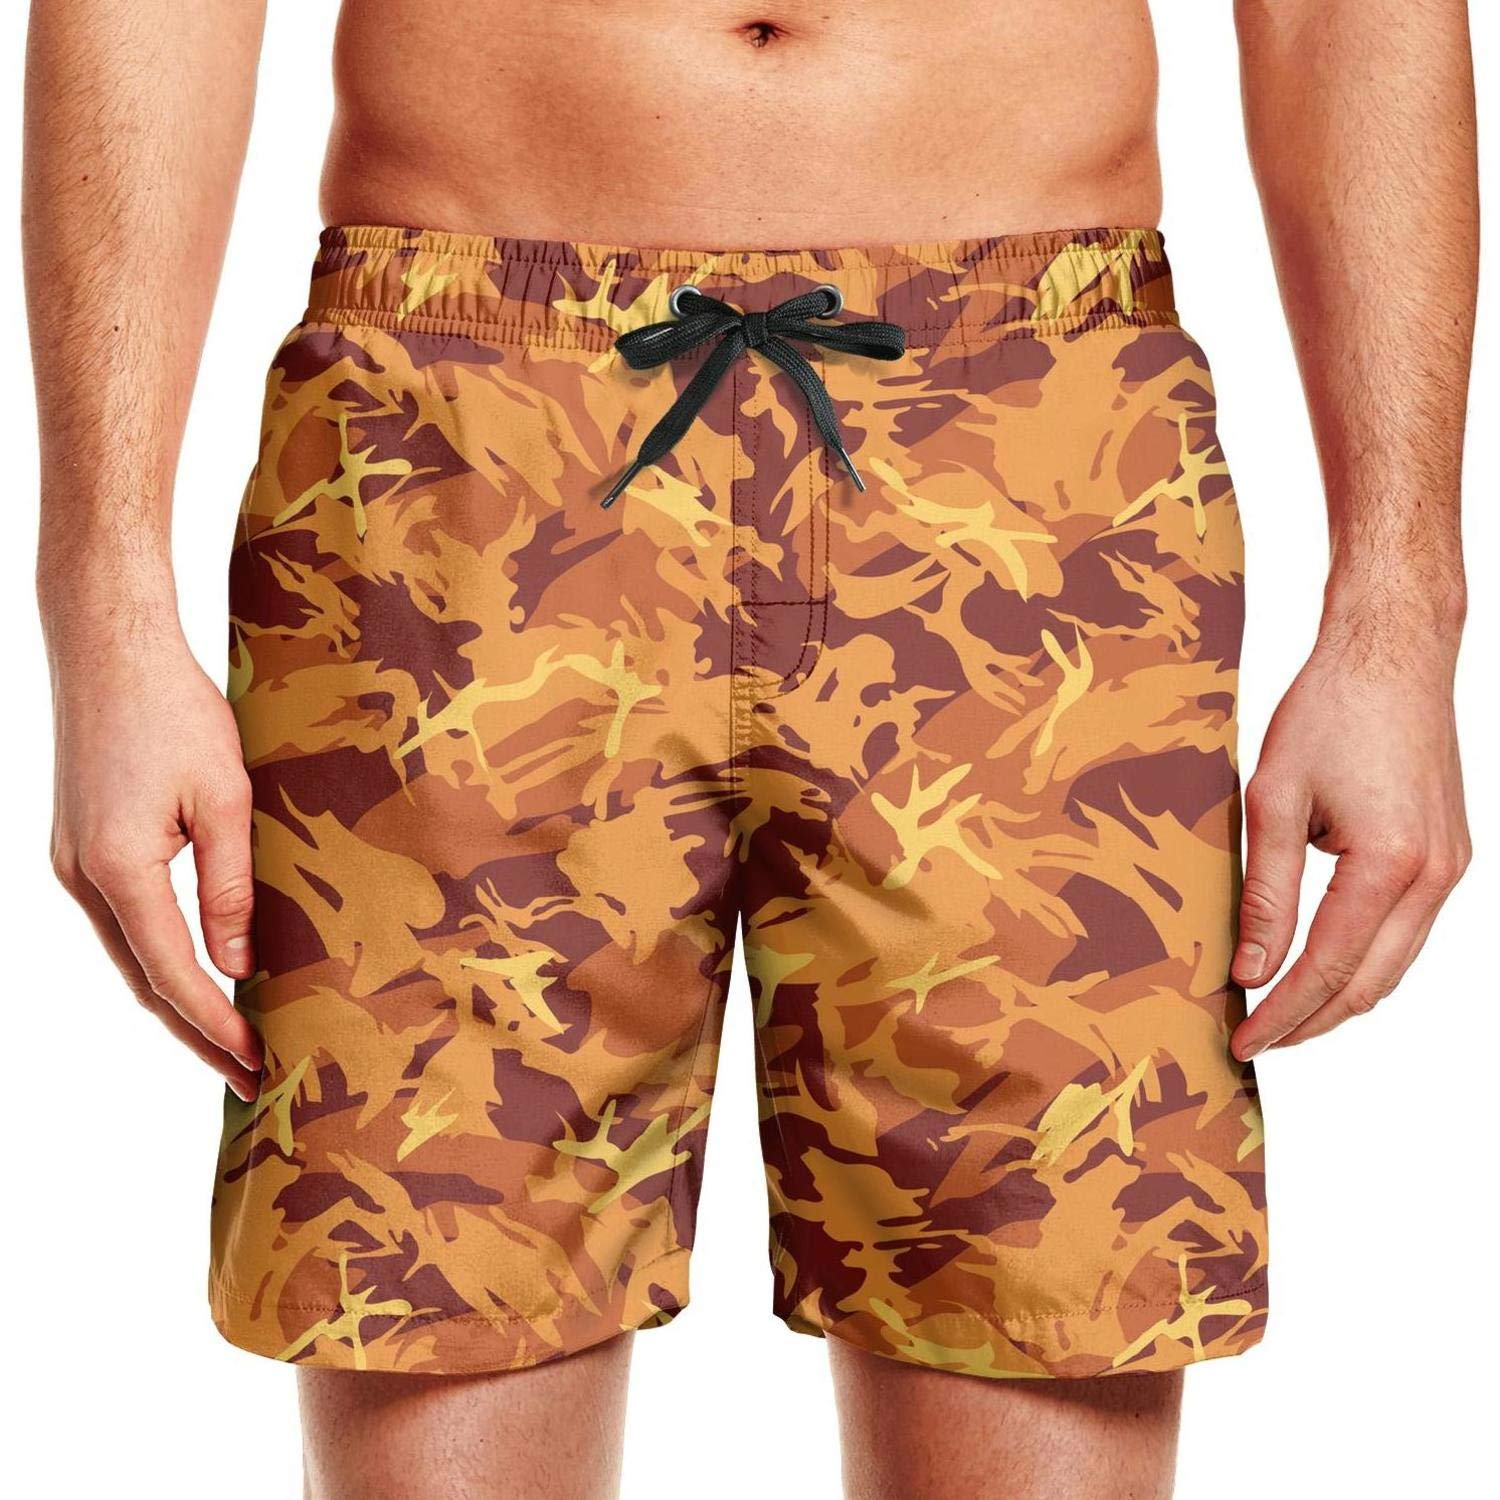 FPPING Mens Green Butterfly Leafy Camo Fashion Swimming Beach Swim Trunk